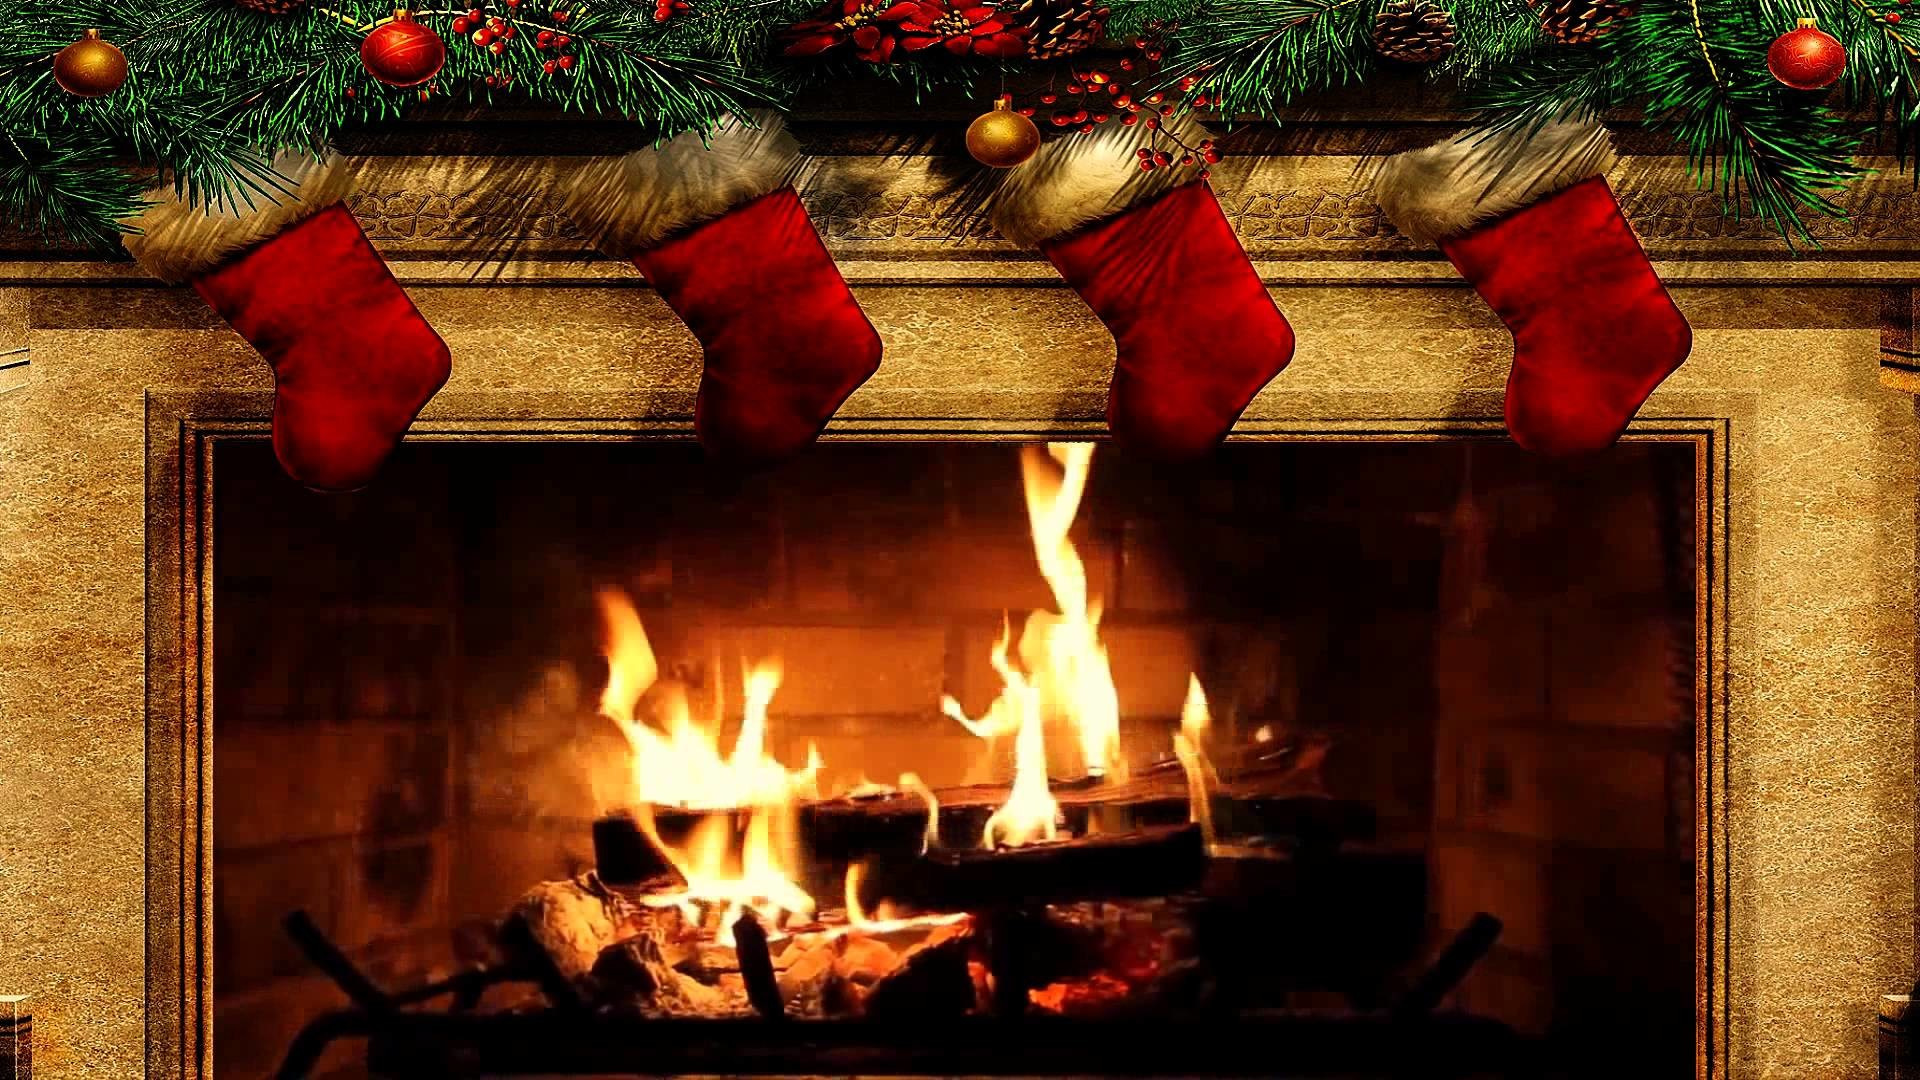 3d Snowy Cottage Animated Wallpaper Free Download Christmas Fireplace Wallpaper 57 Images